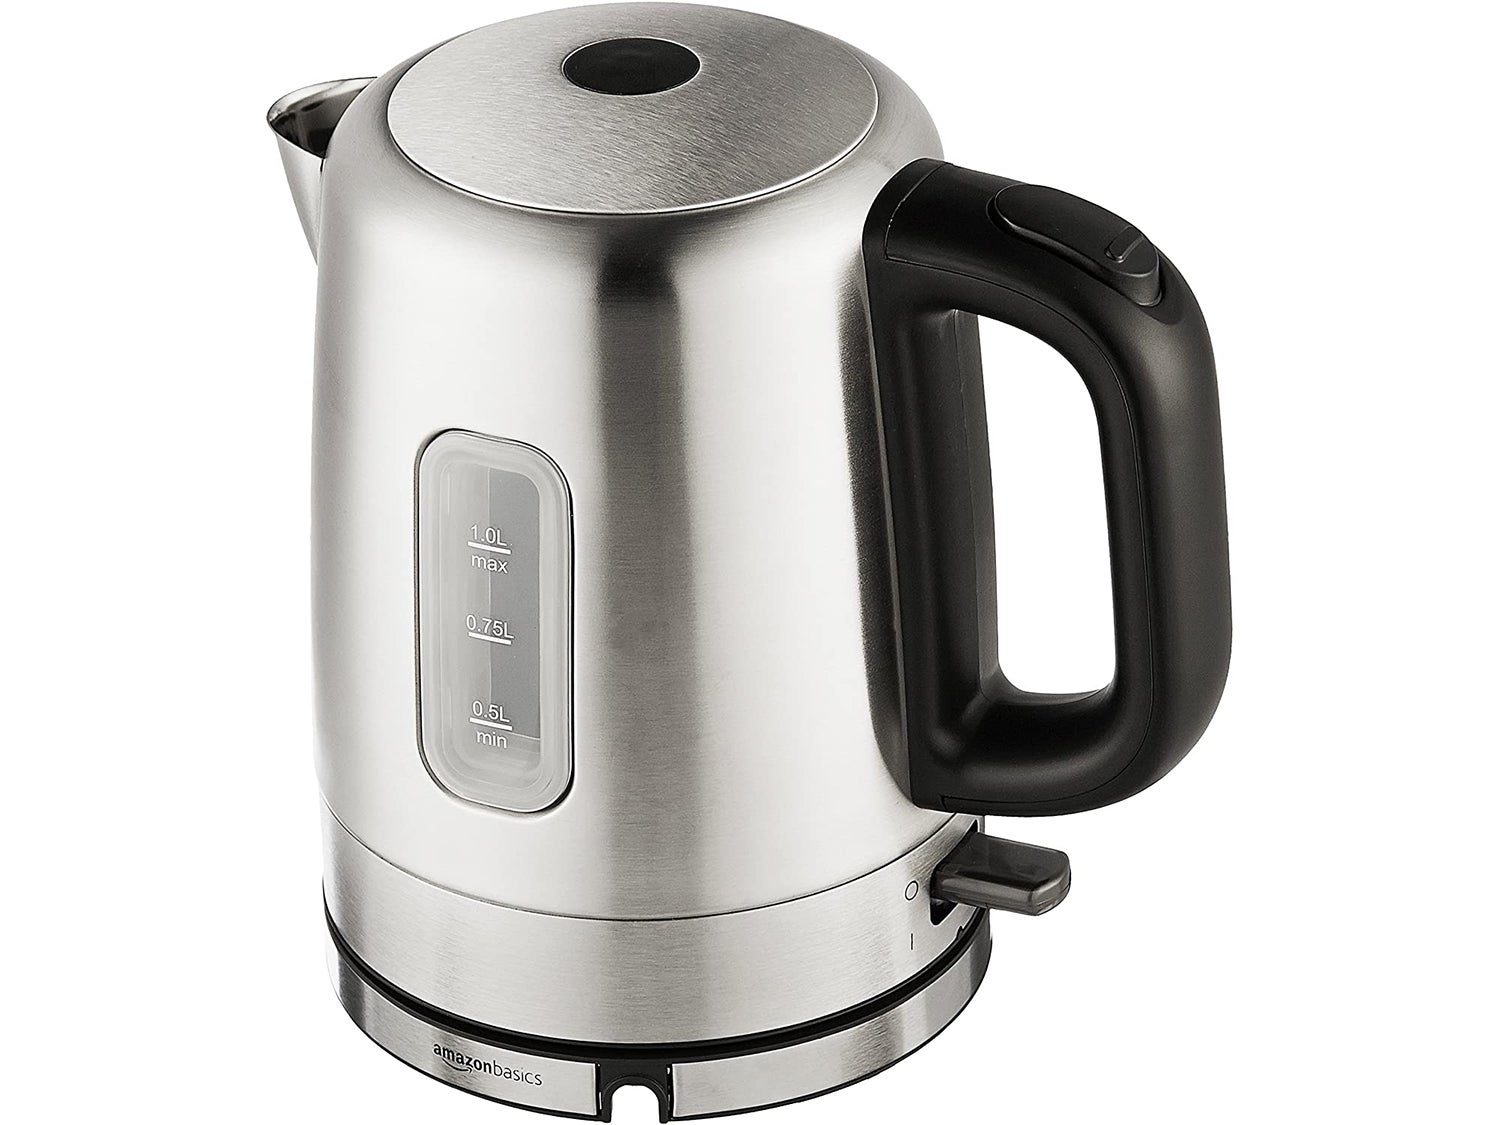 AmazonBasics Stainless Steel Portable Electric Hot Water Kettle